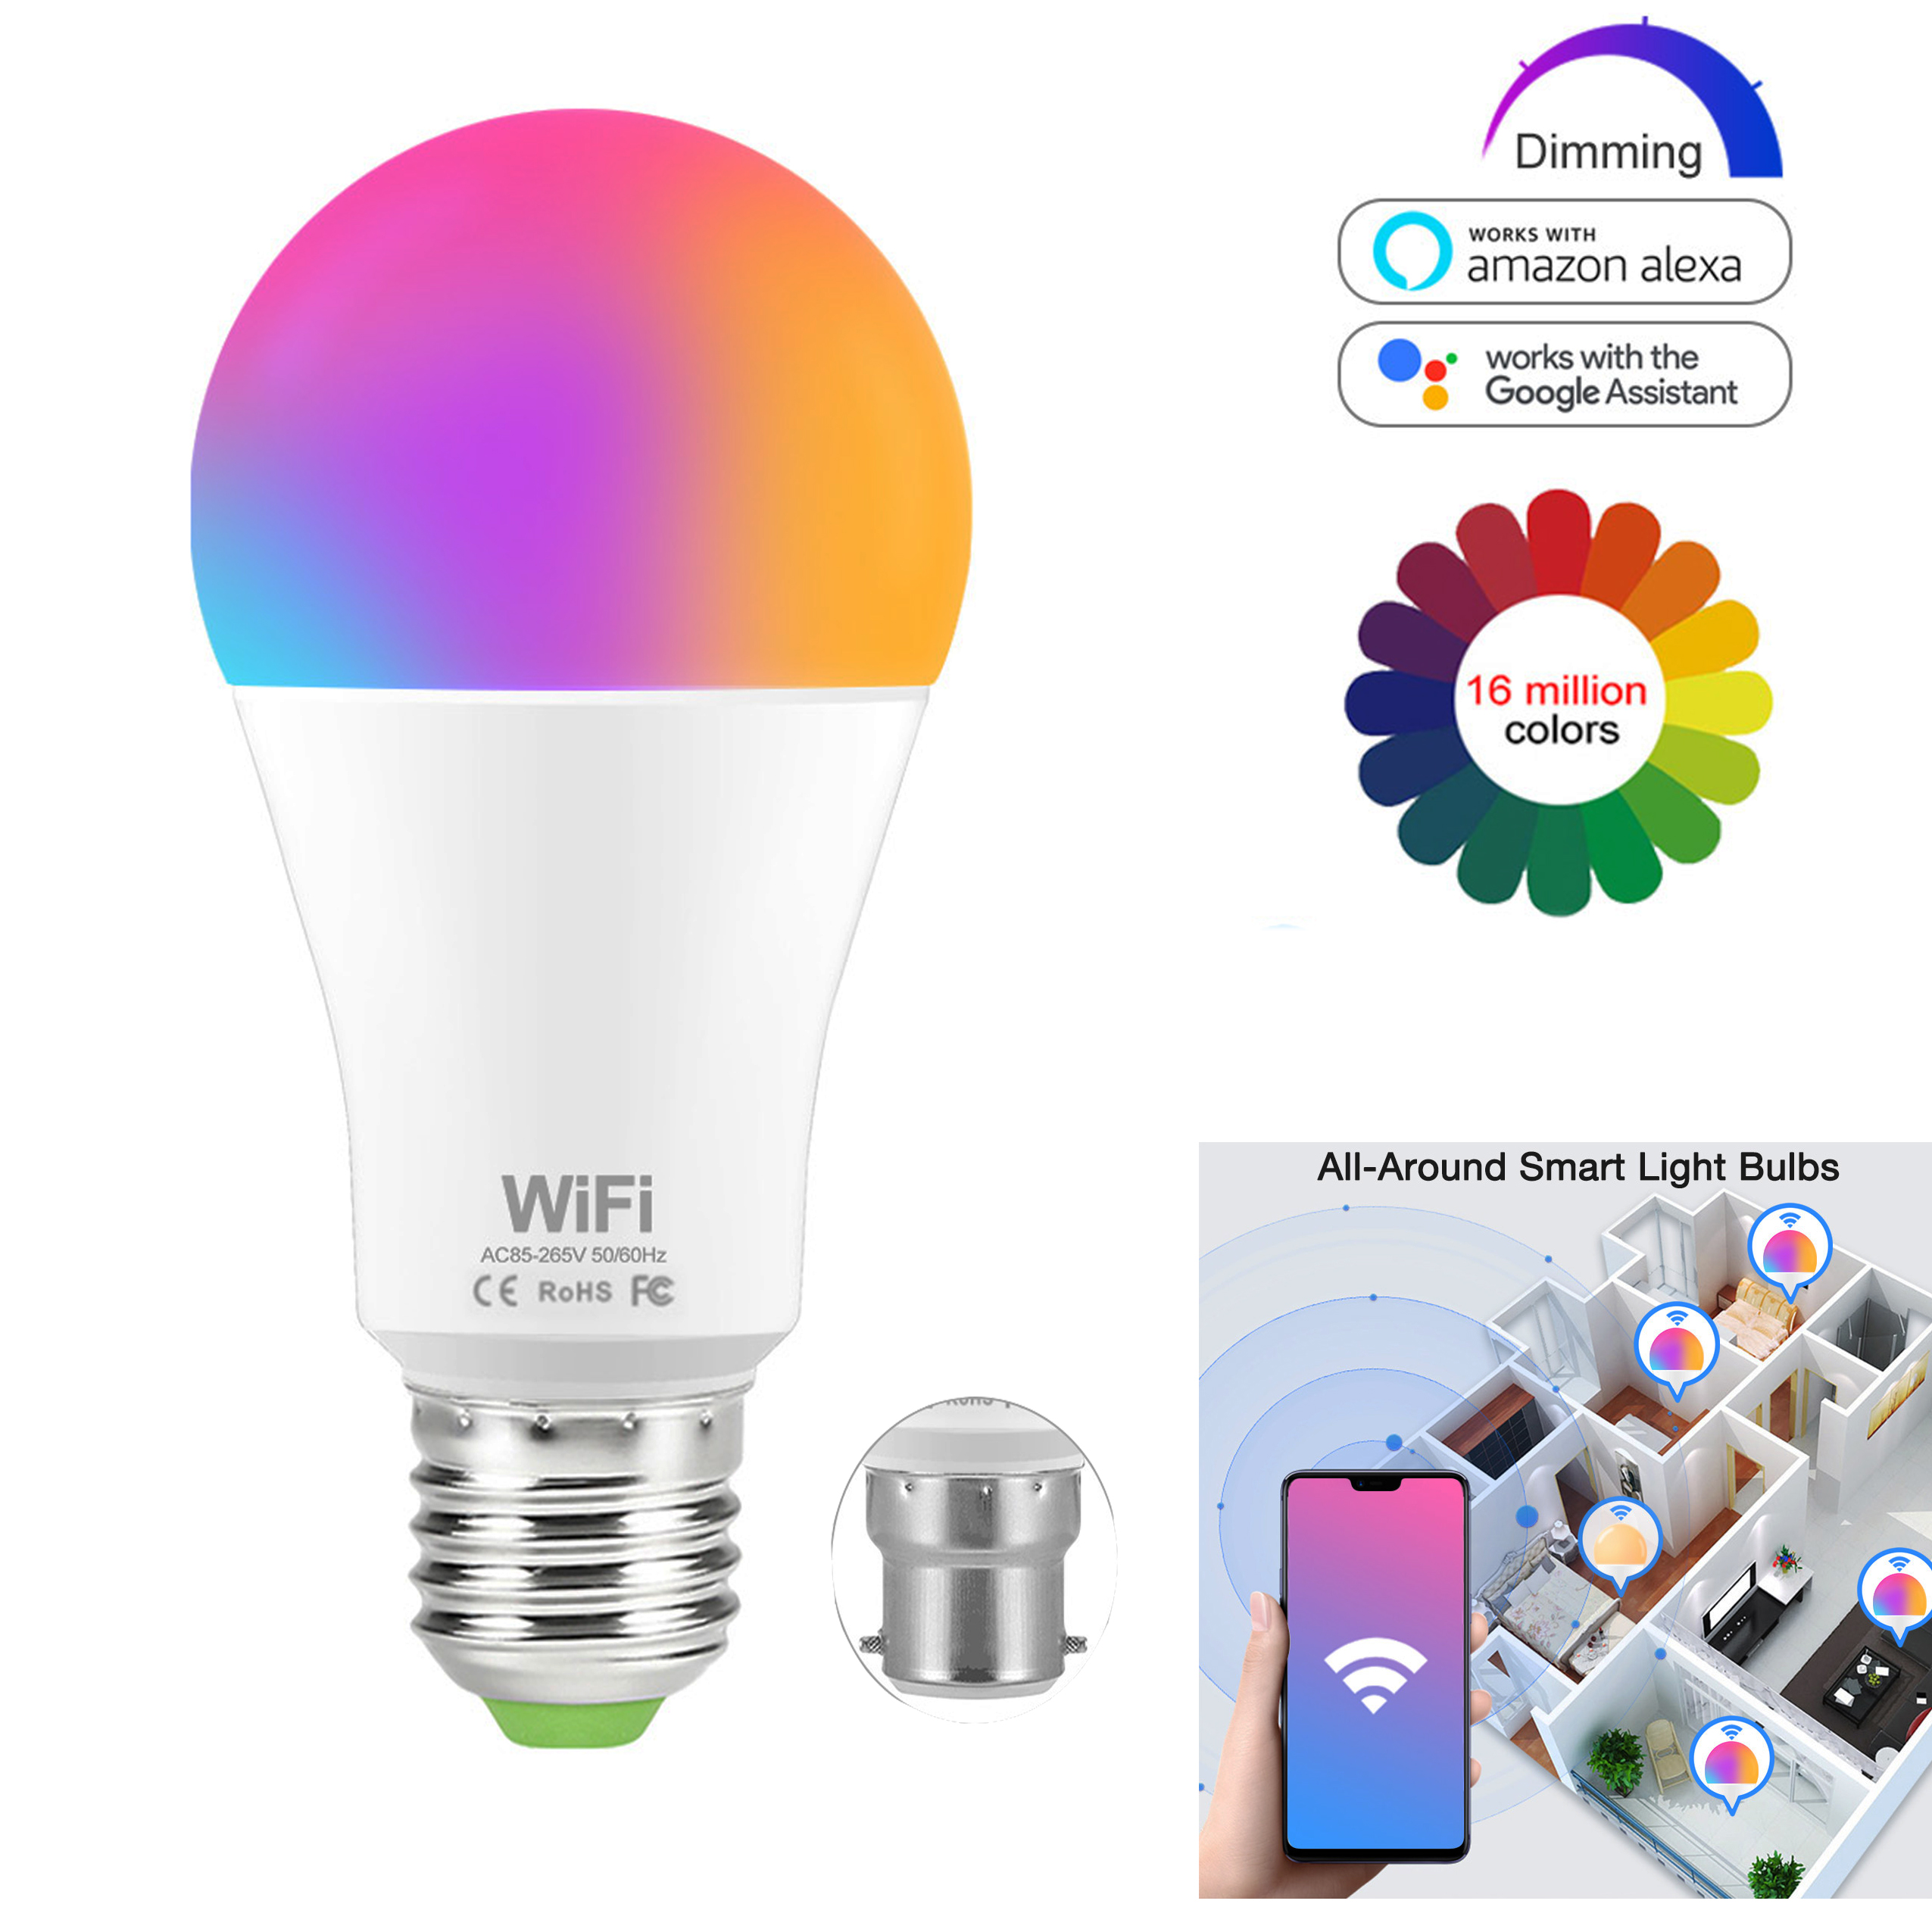 WIFI Smart Light Bulb Lamp 15W RGB + White/Warm Color LED Lamp Changeable B22 Voice Remote Phone Compatible With Alexa/ Google